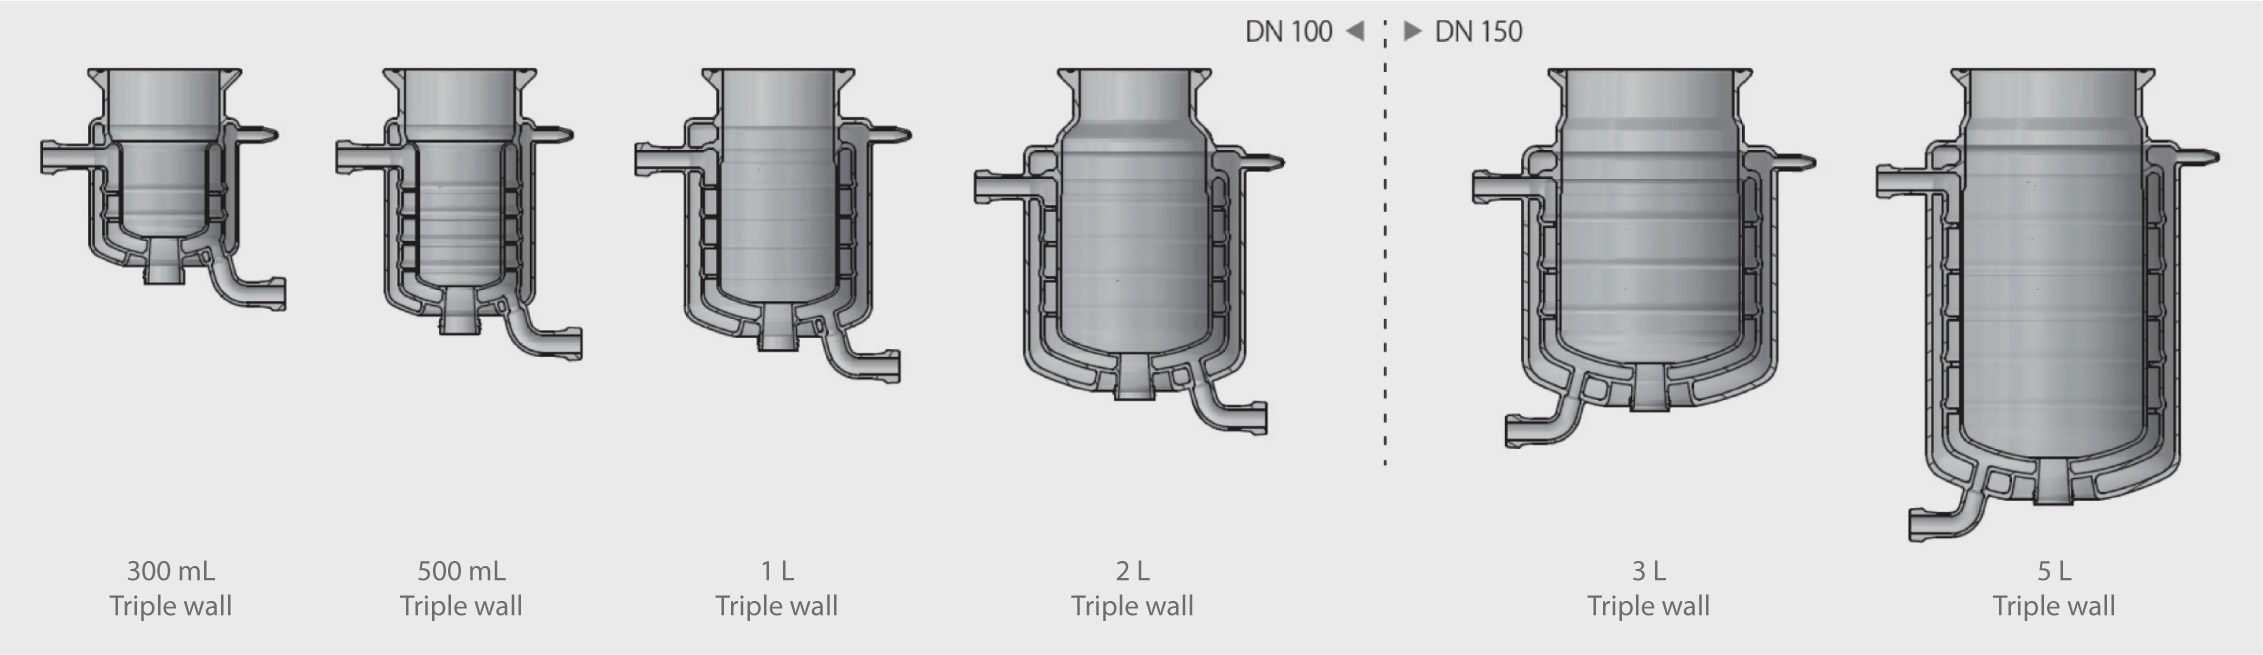 Reaction vessel volumes from 300 mL to 5 L